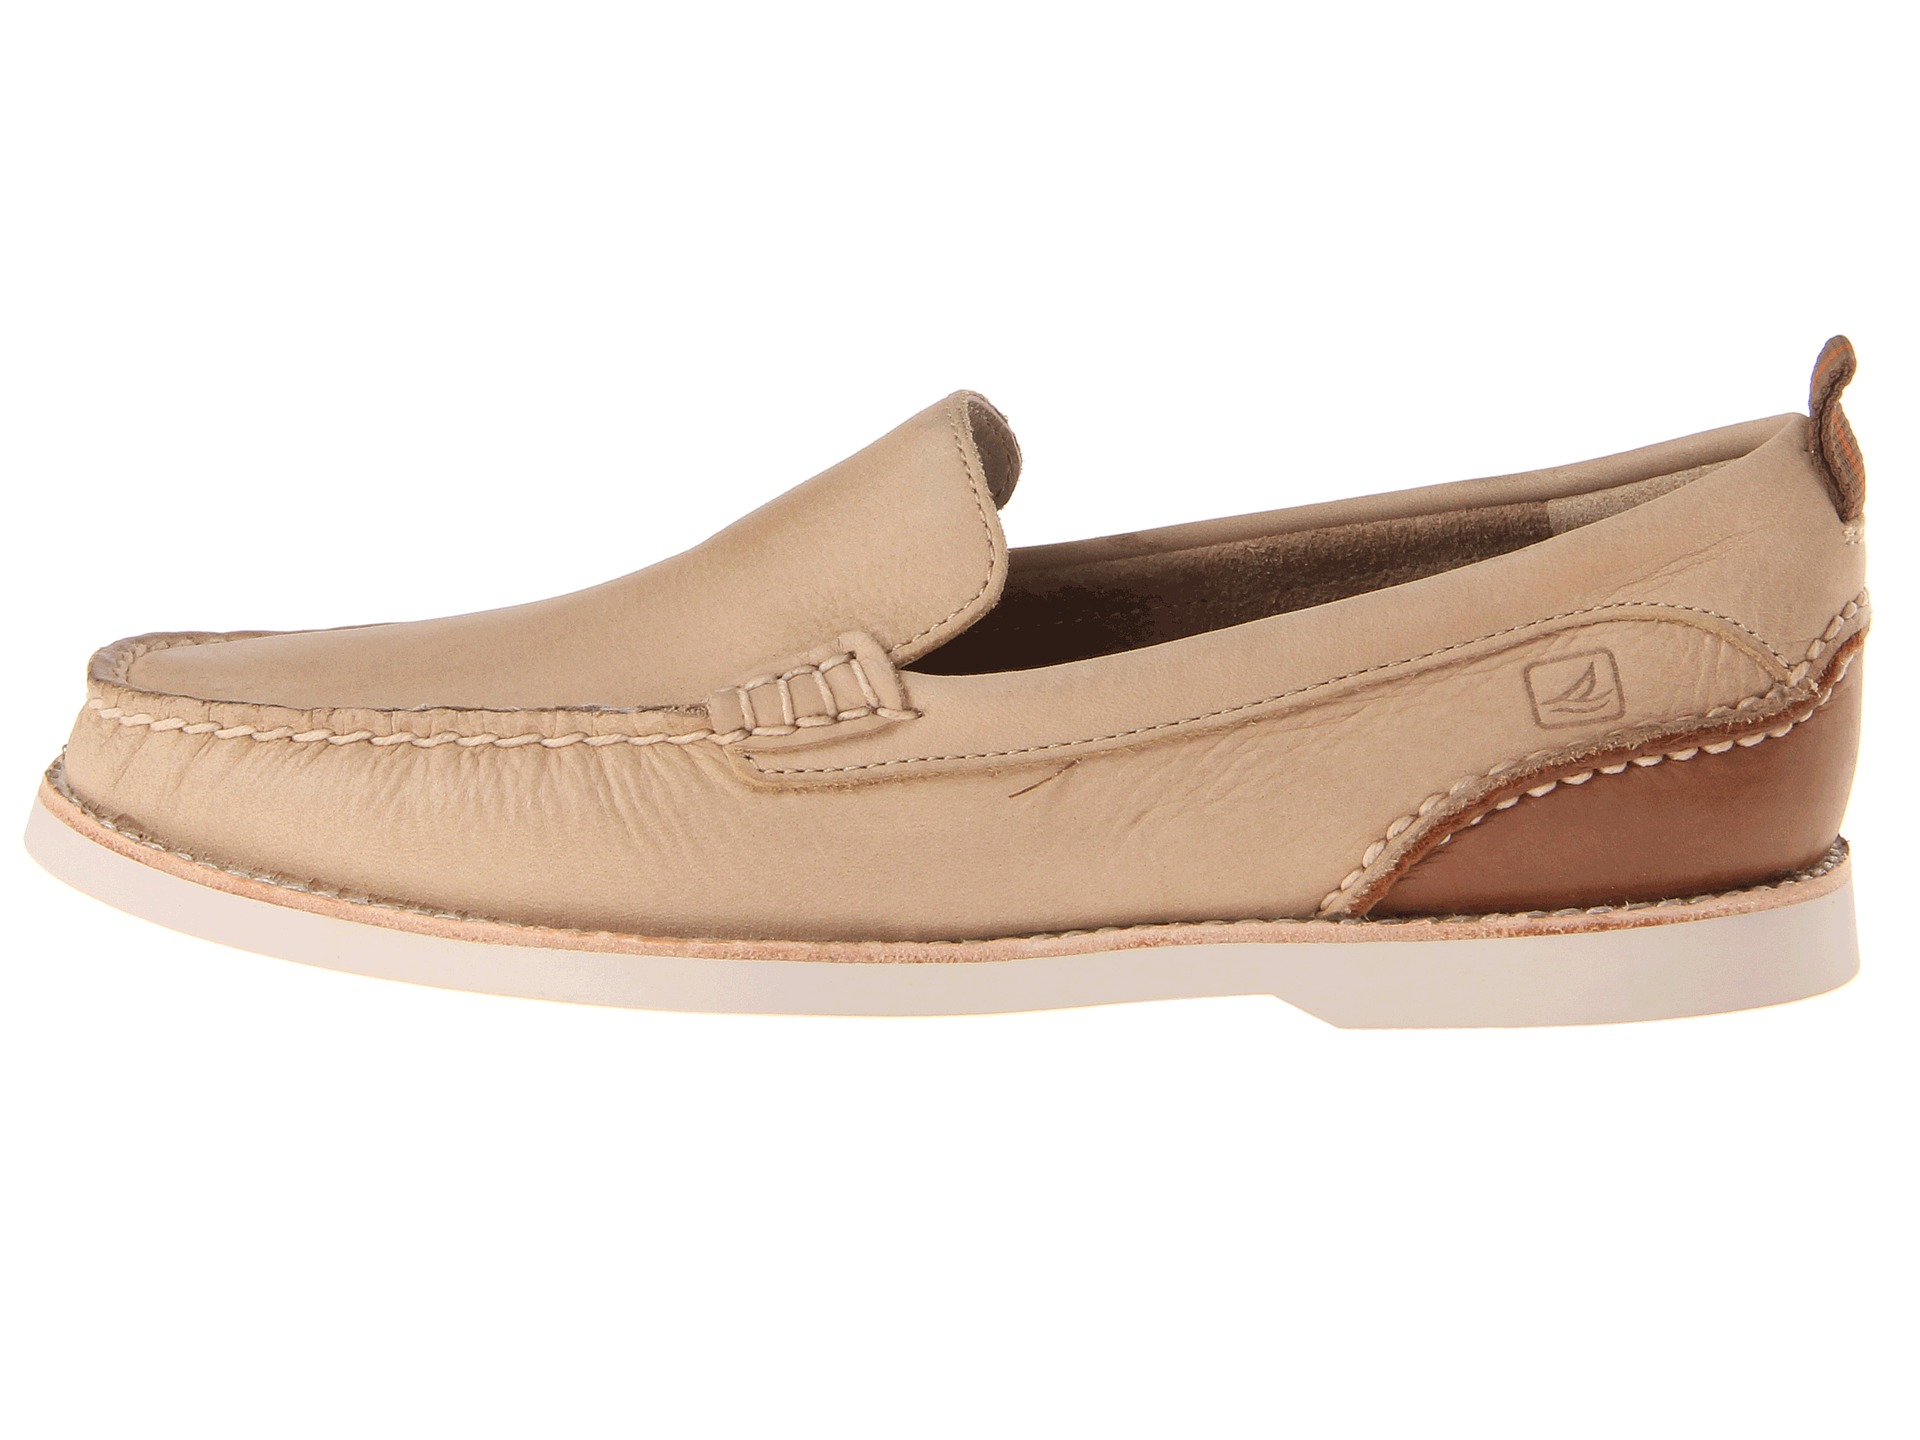 f5e5c6082d88 Sperry Top-Sider Seaside Moc Venetian in Natural for Men - Lyst